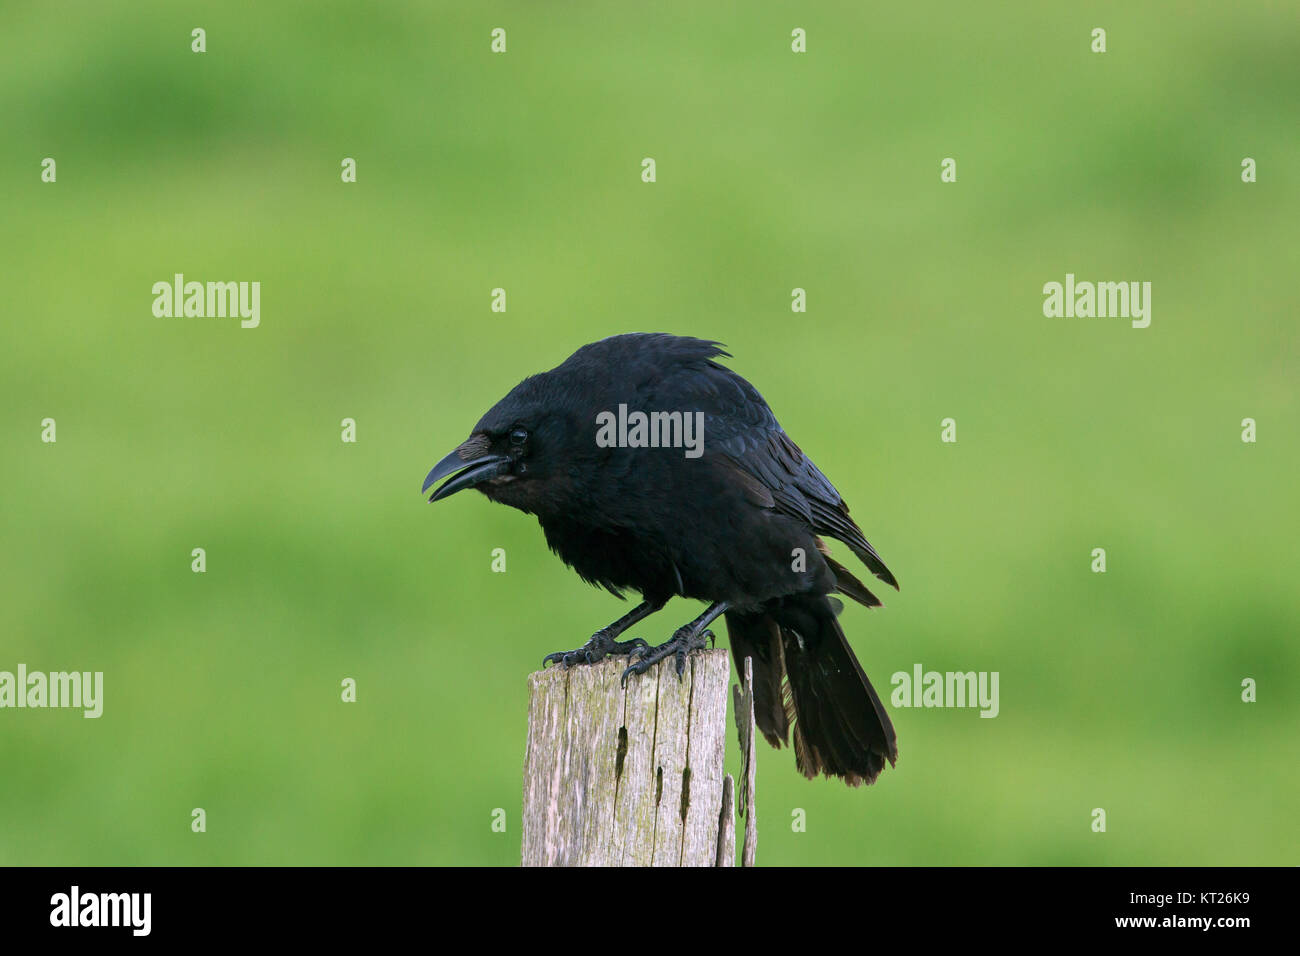 Carrion crow (Corvus corone) calling from wooden fence post along field - Stock Image